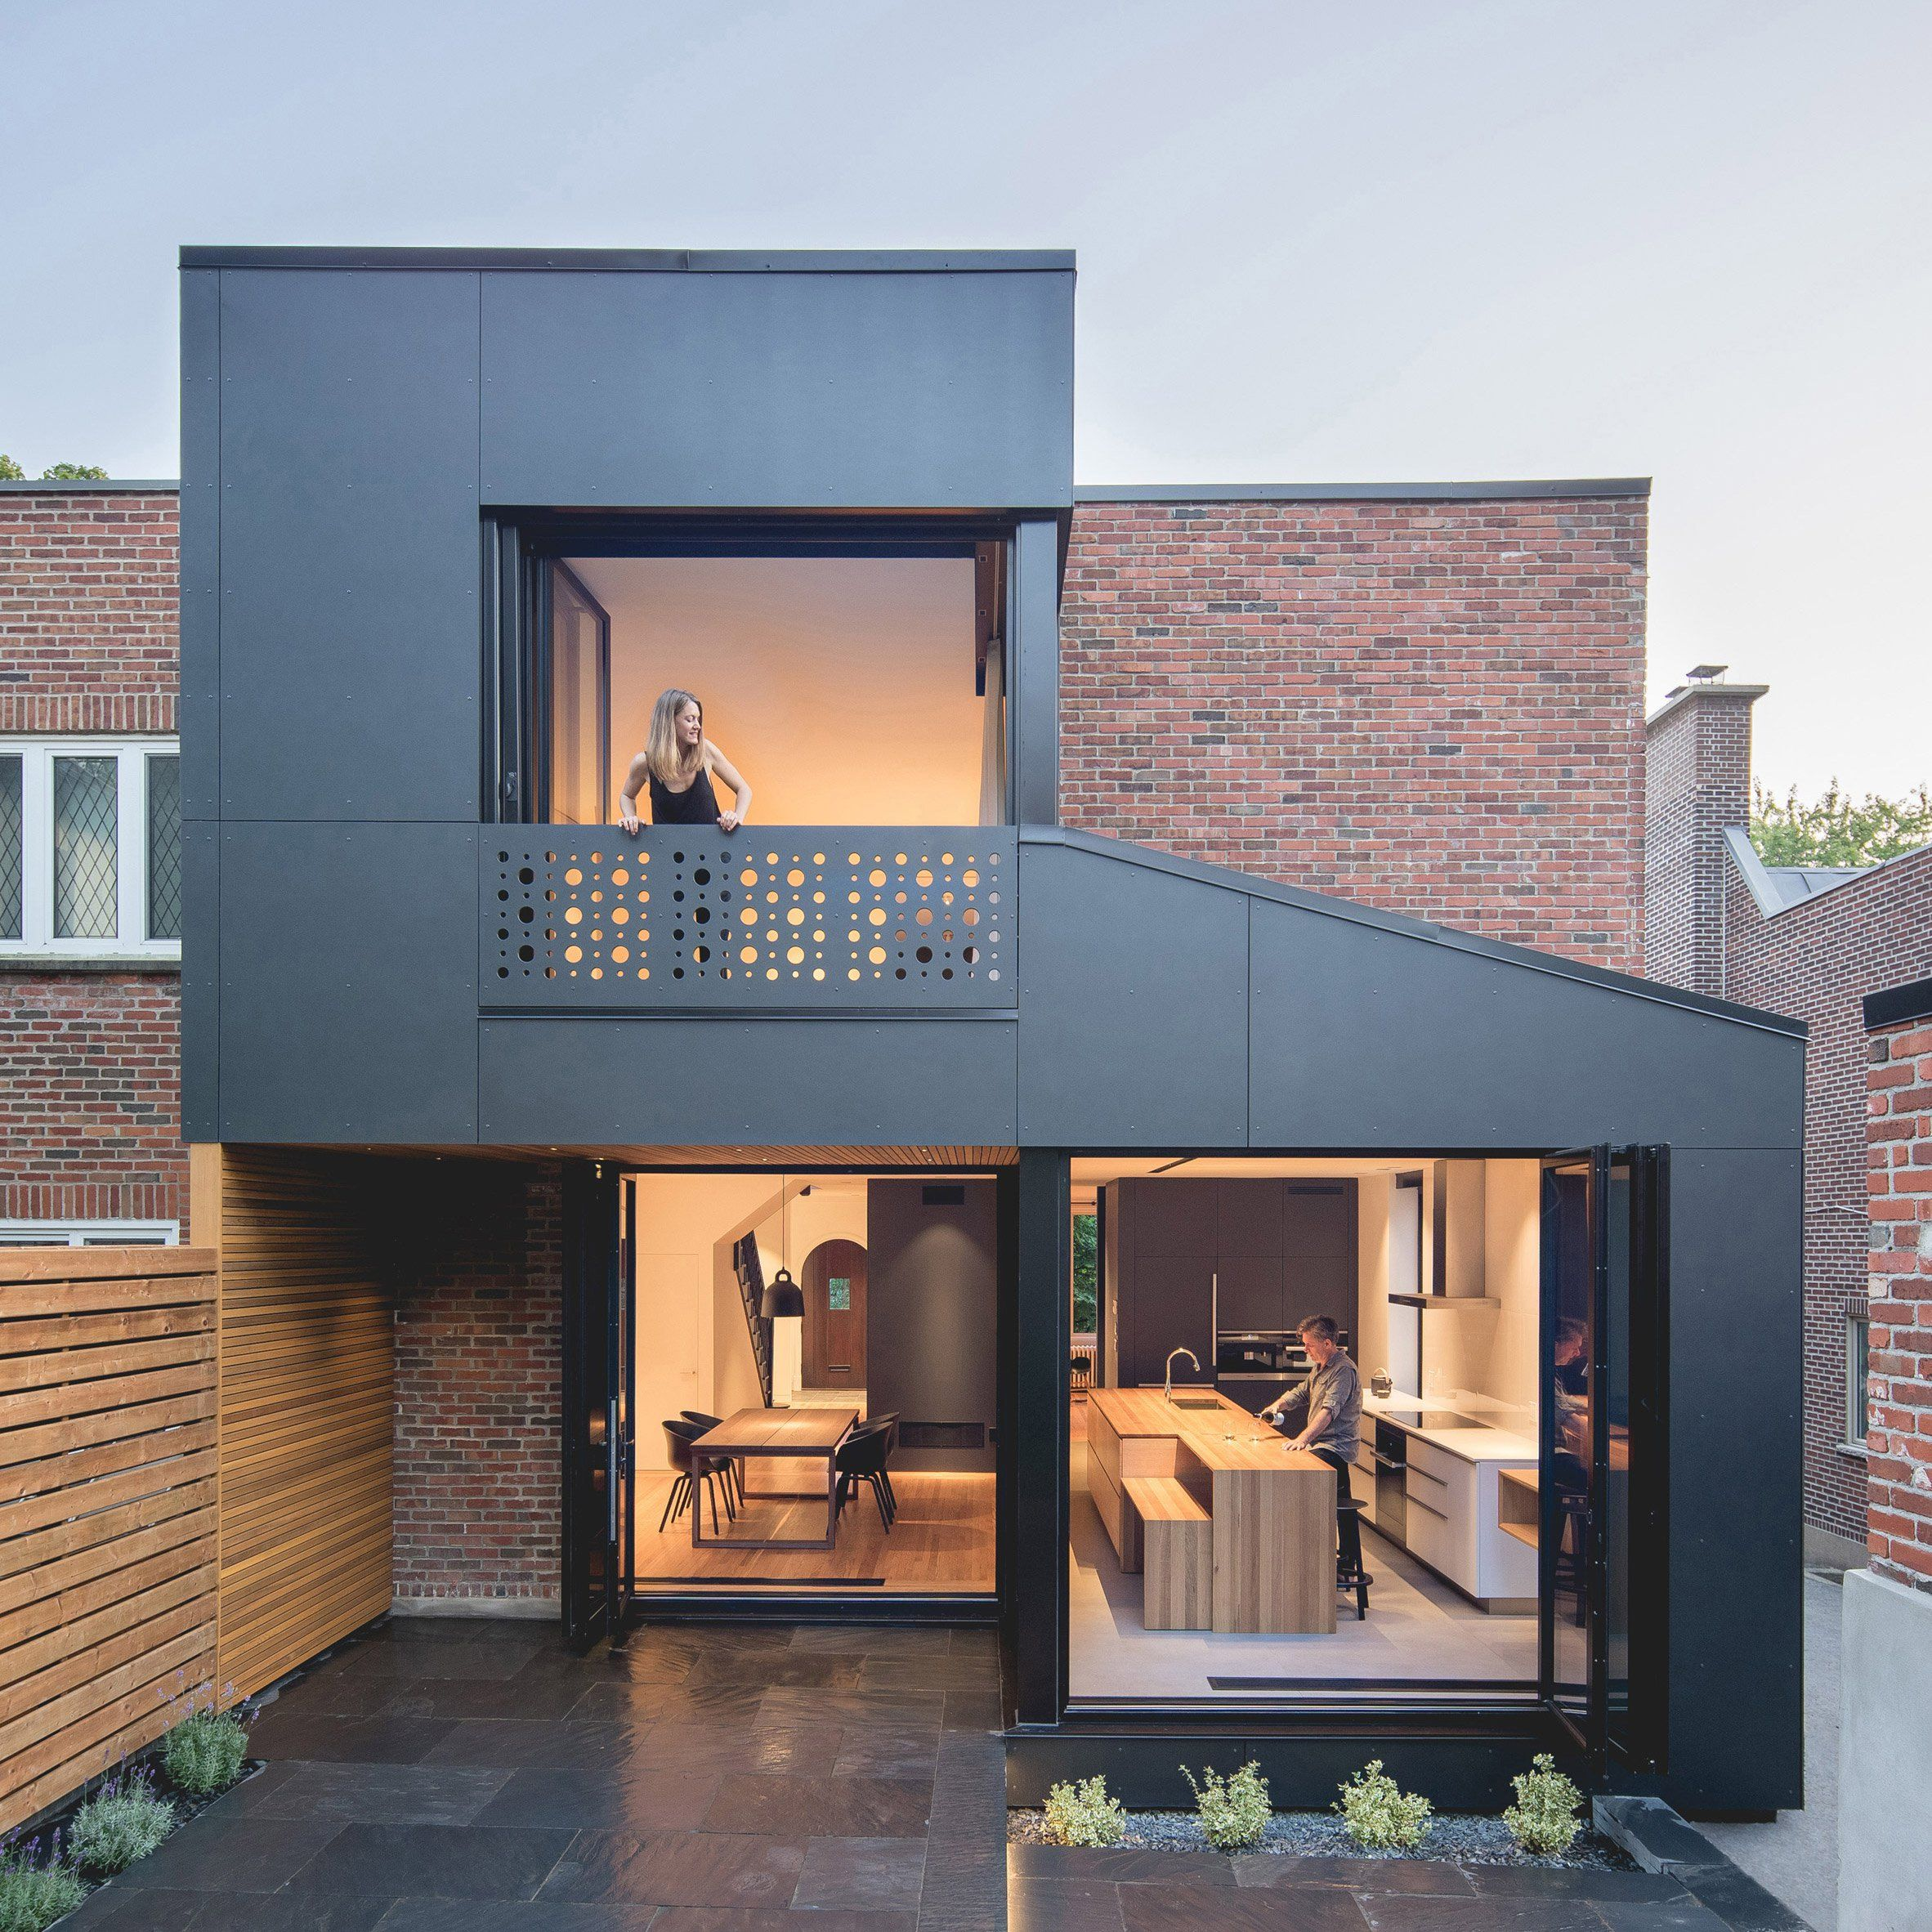 Architect Natalie Dionne has attached a geometric extension to the back of a brick townhouse in Montreal, to include more space in the kitchen and bedroom.